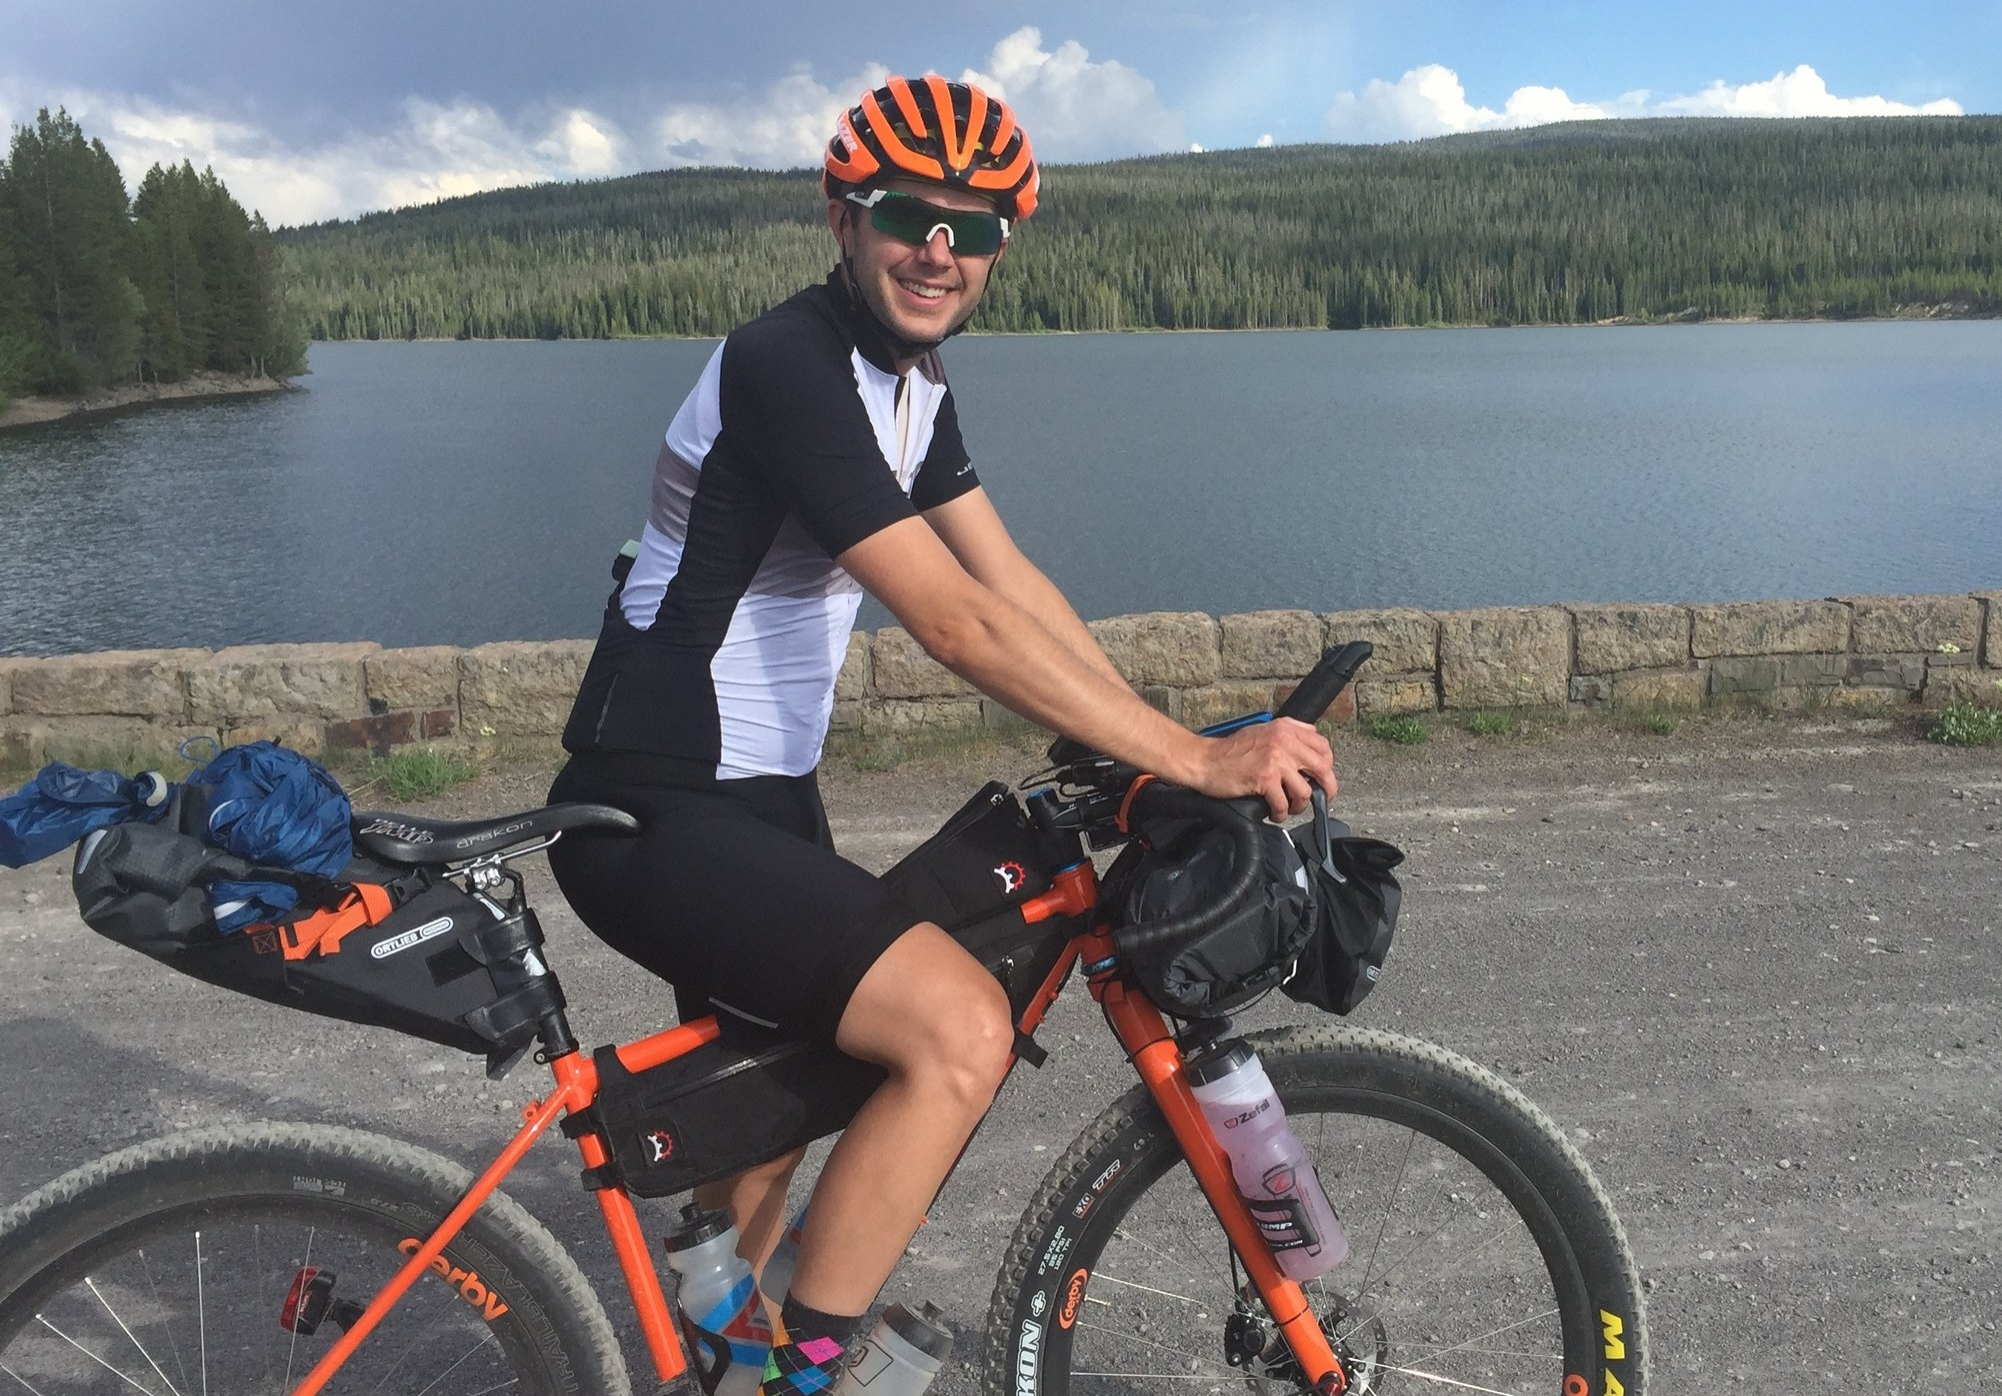 Nick near the Wyoming/Idaho border on the Great Divide Mountain Bike Route during a weeklong tour with his wife Kristen.